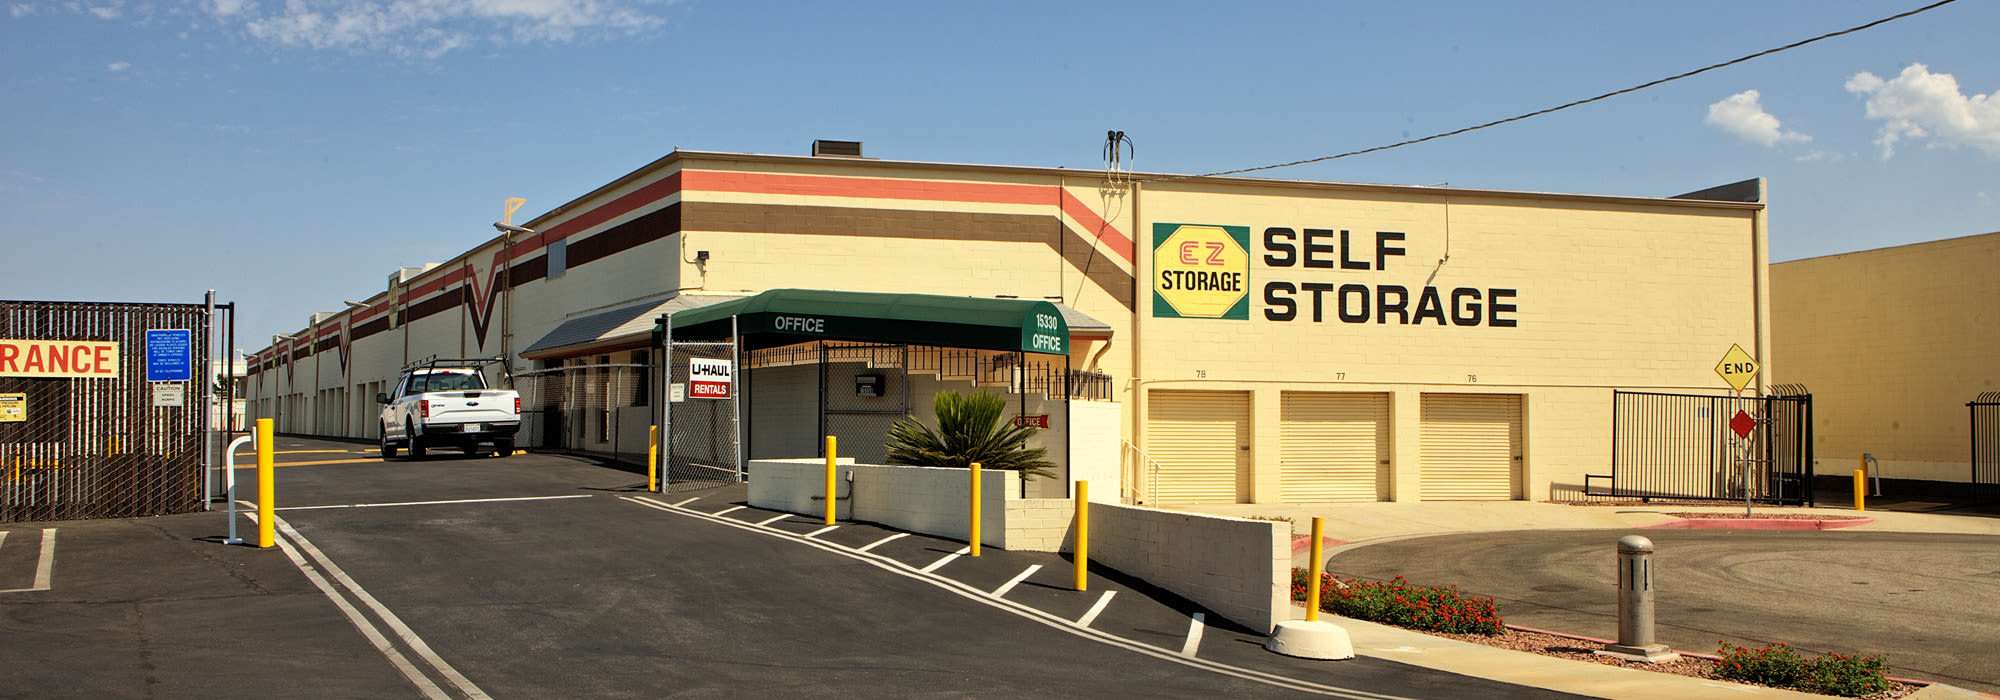 Self Storage In Van Nuys Ca